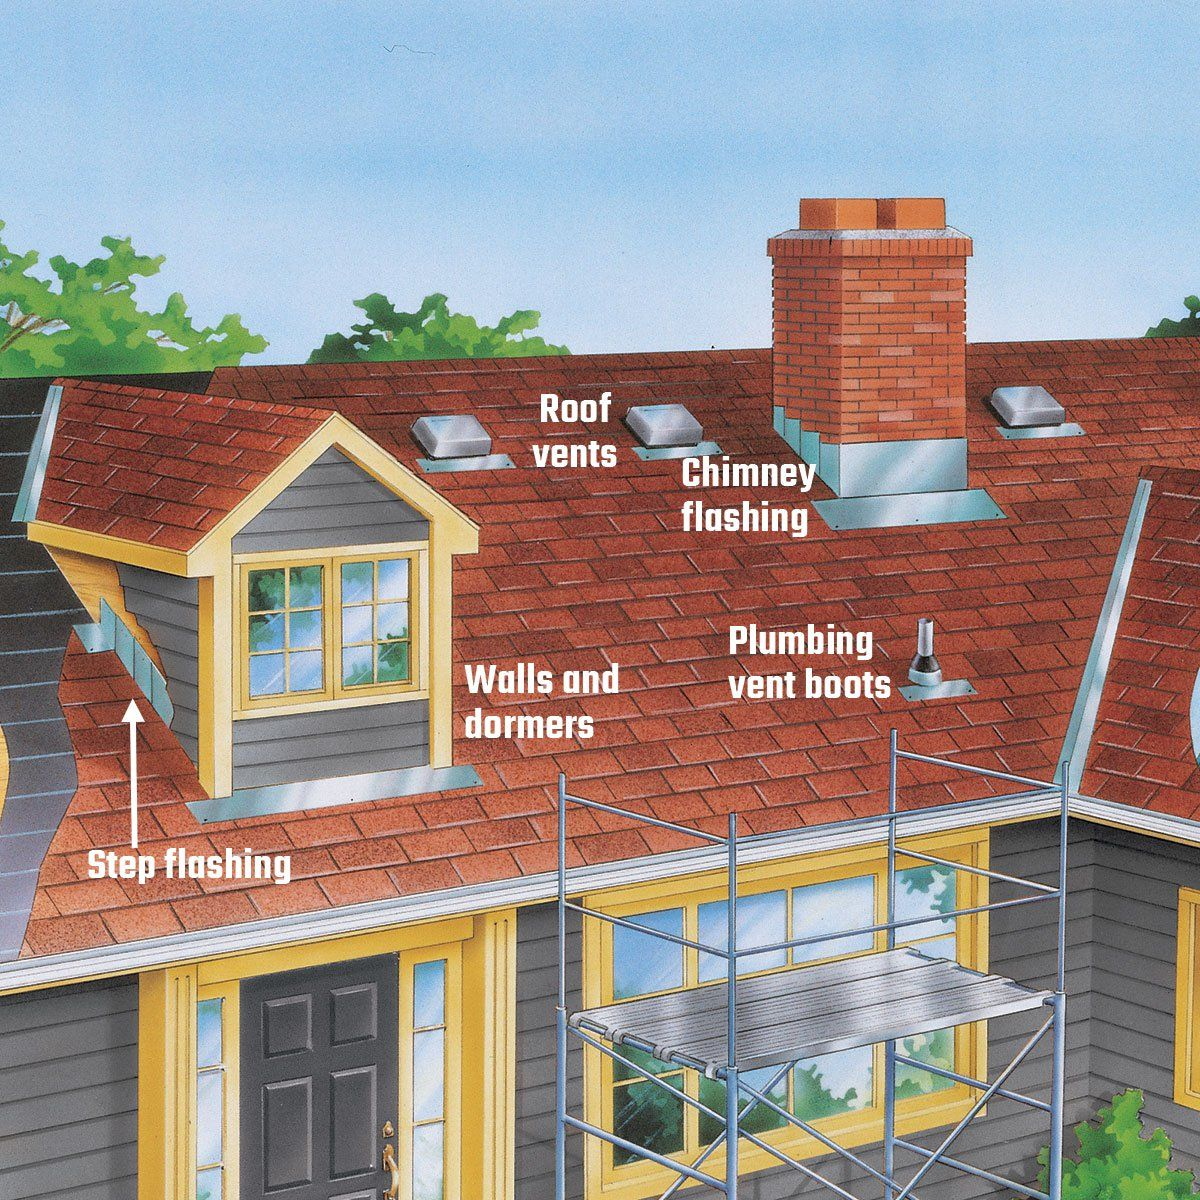 How To Find And Fix Roof Leaks Leaking Roof Roof Roof Repair